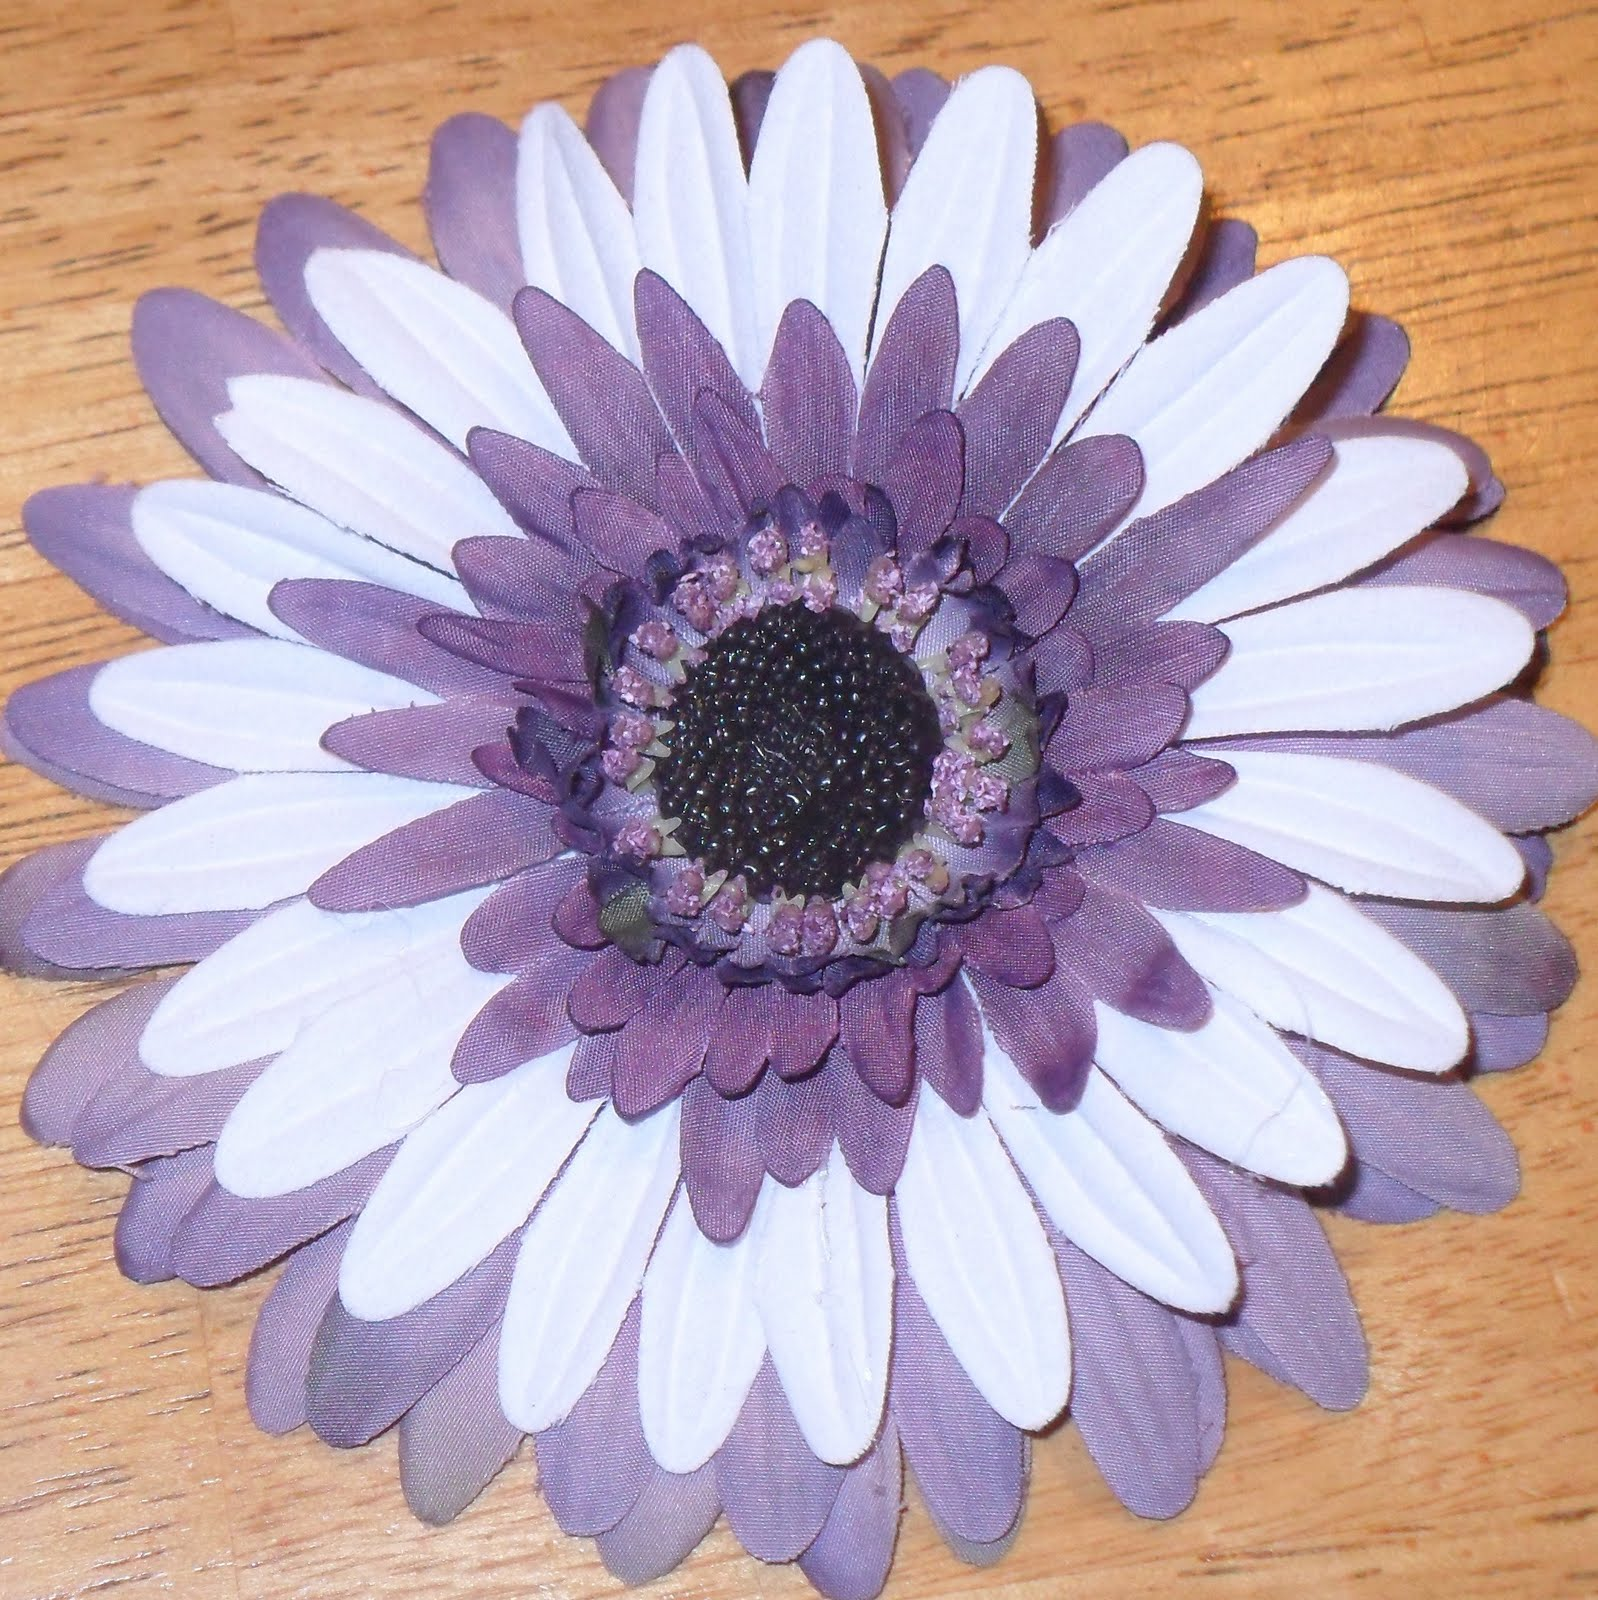 The Mellin Patch Craft Monday Silk Flower Barrettes